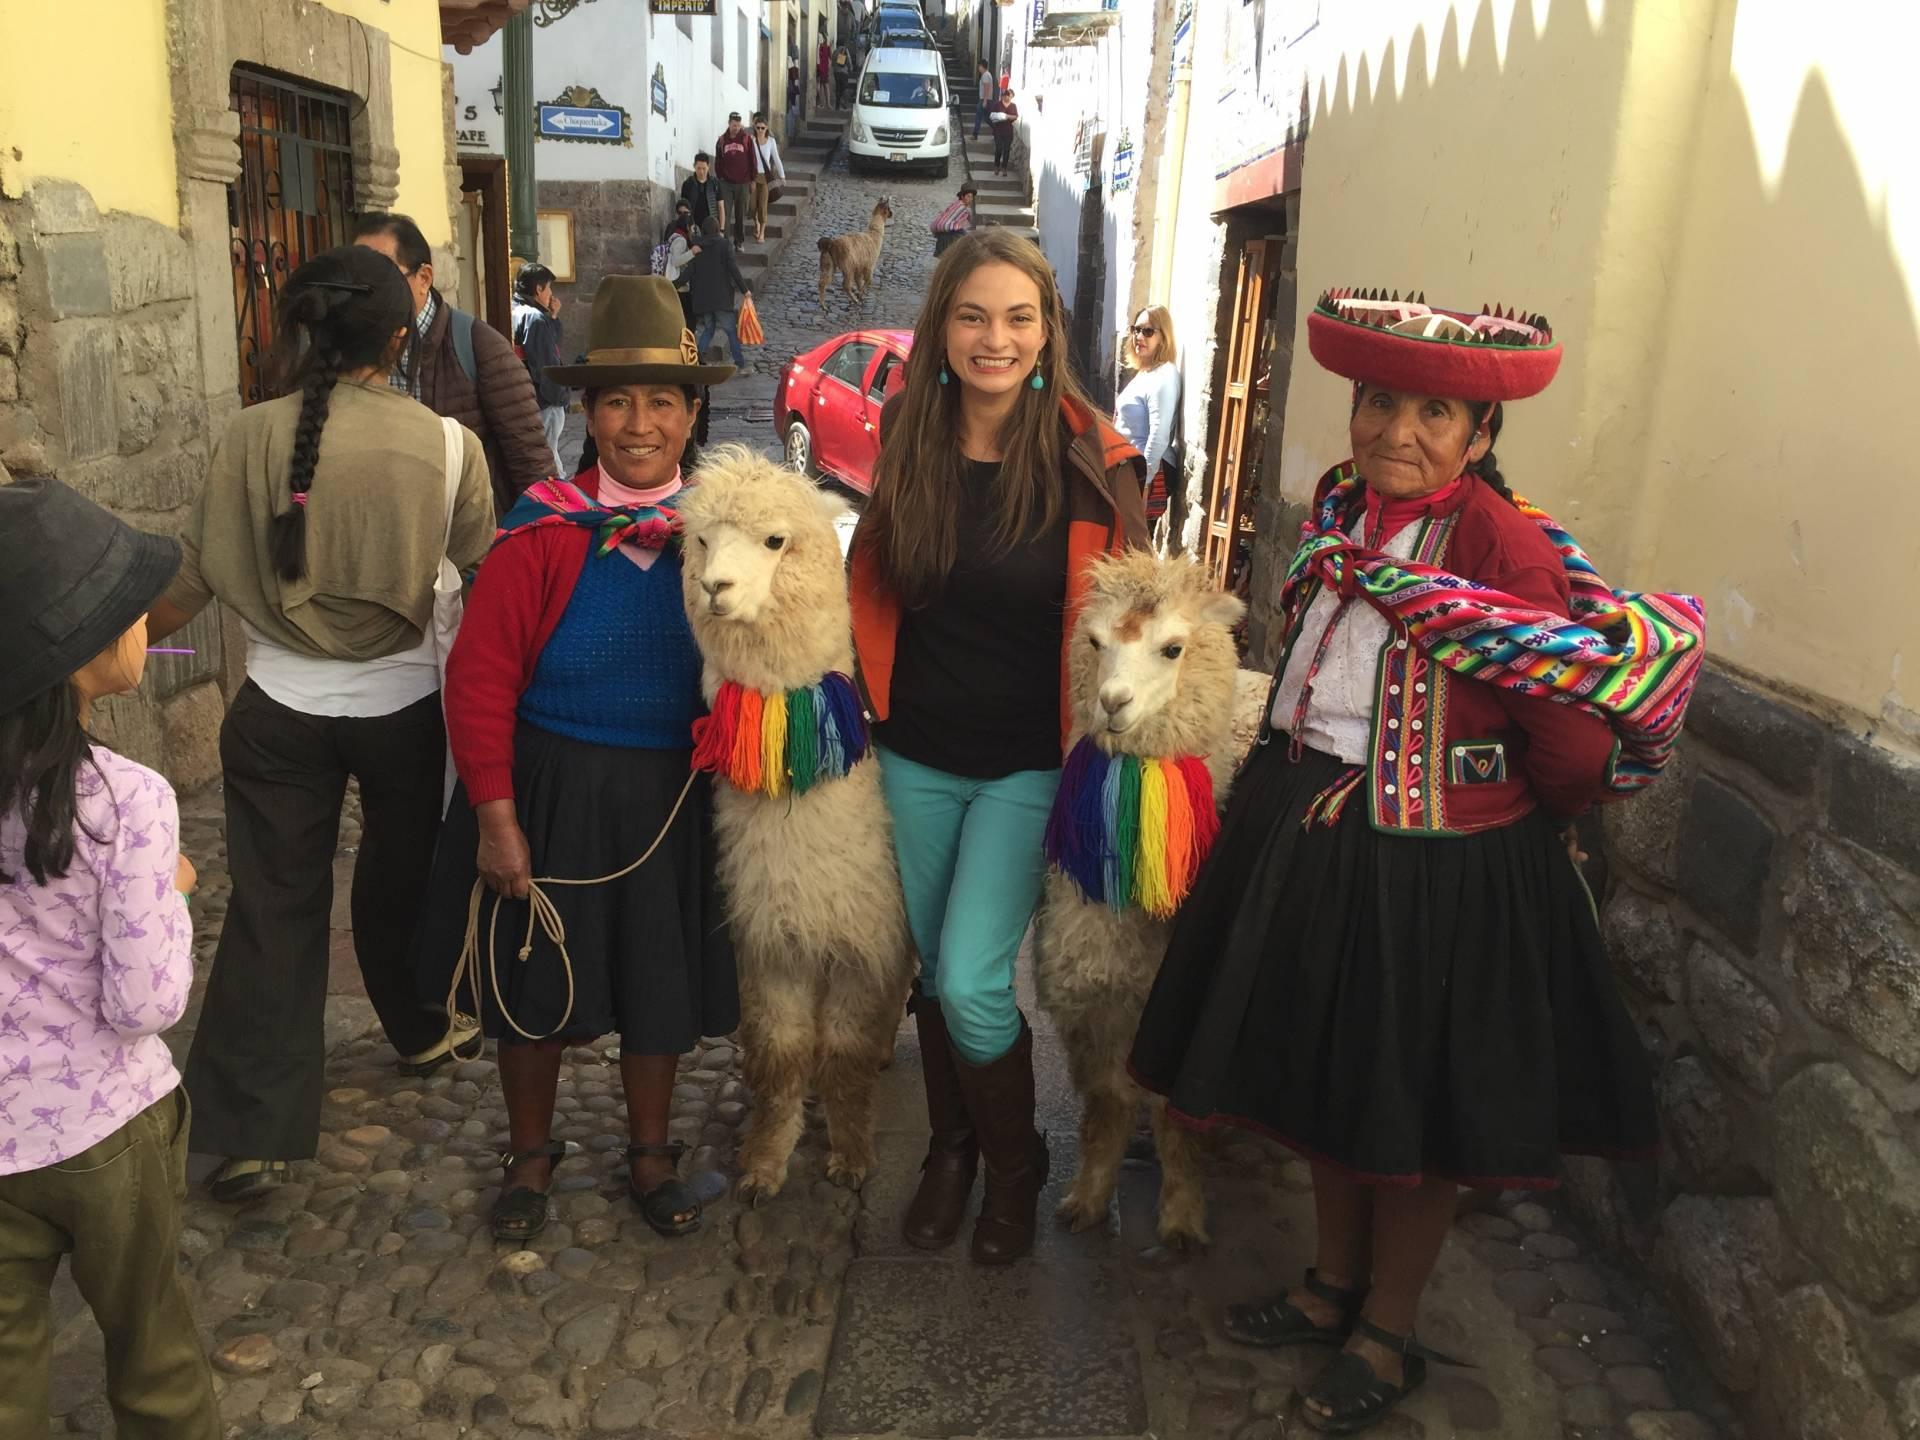 Posing with llamas in Cusco